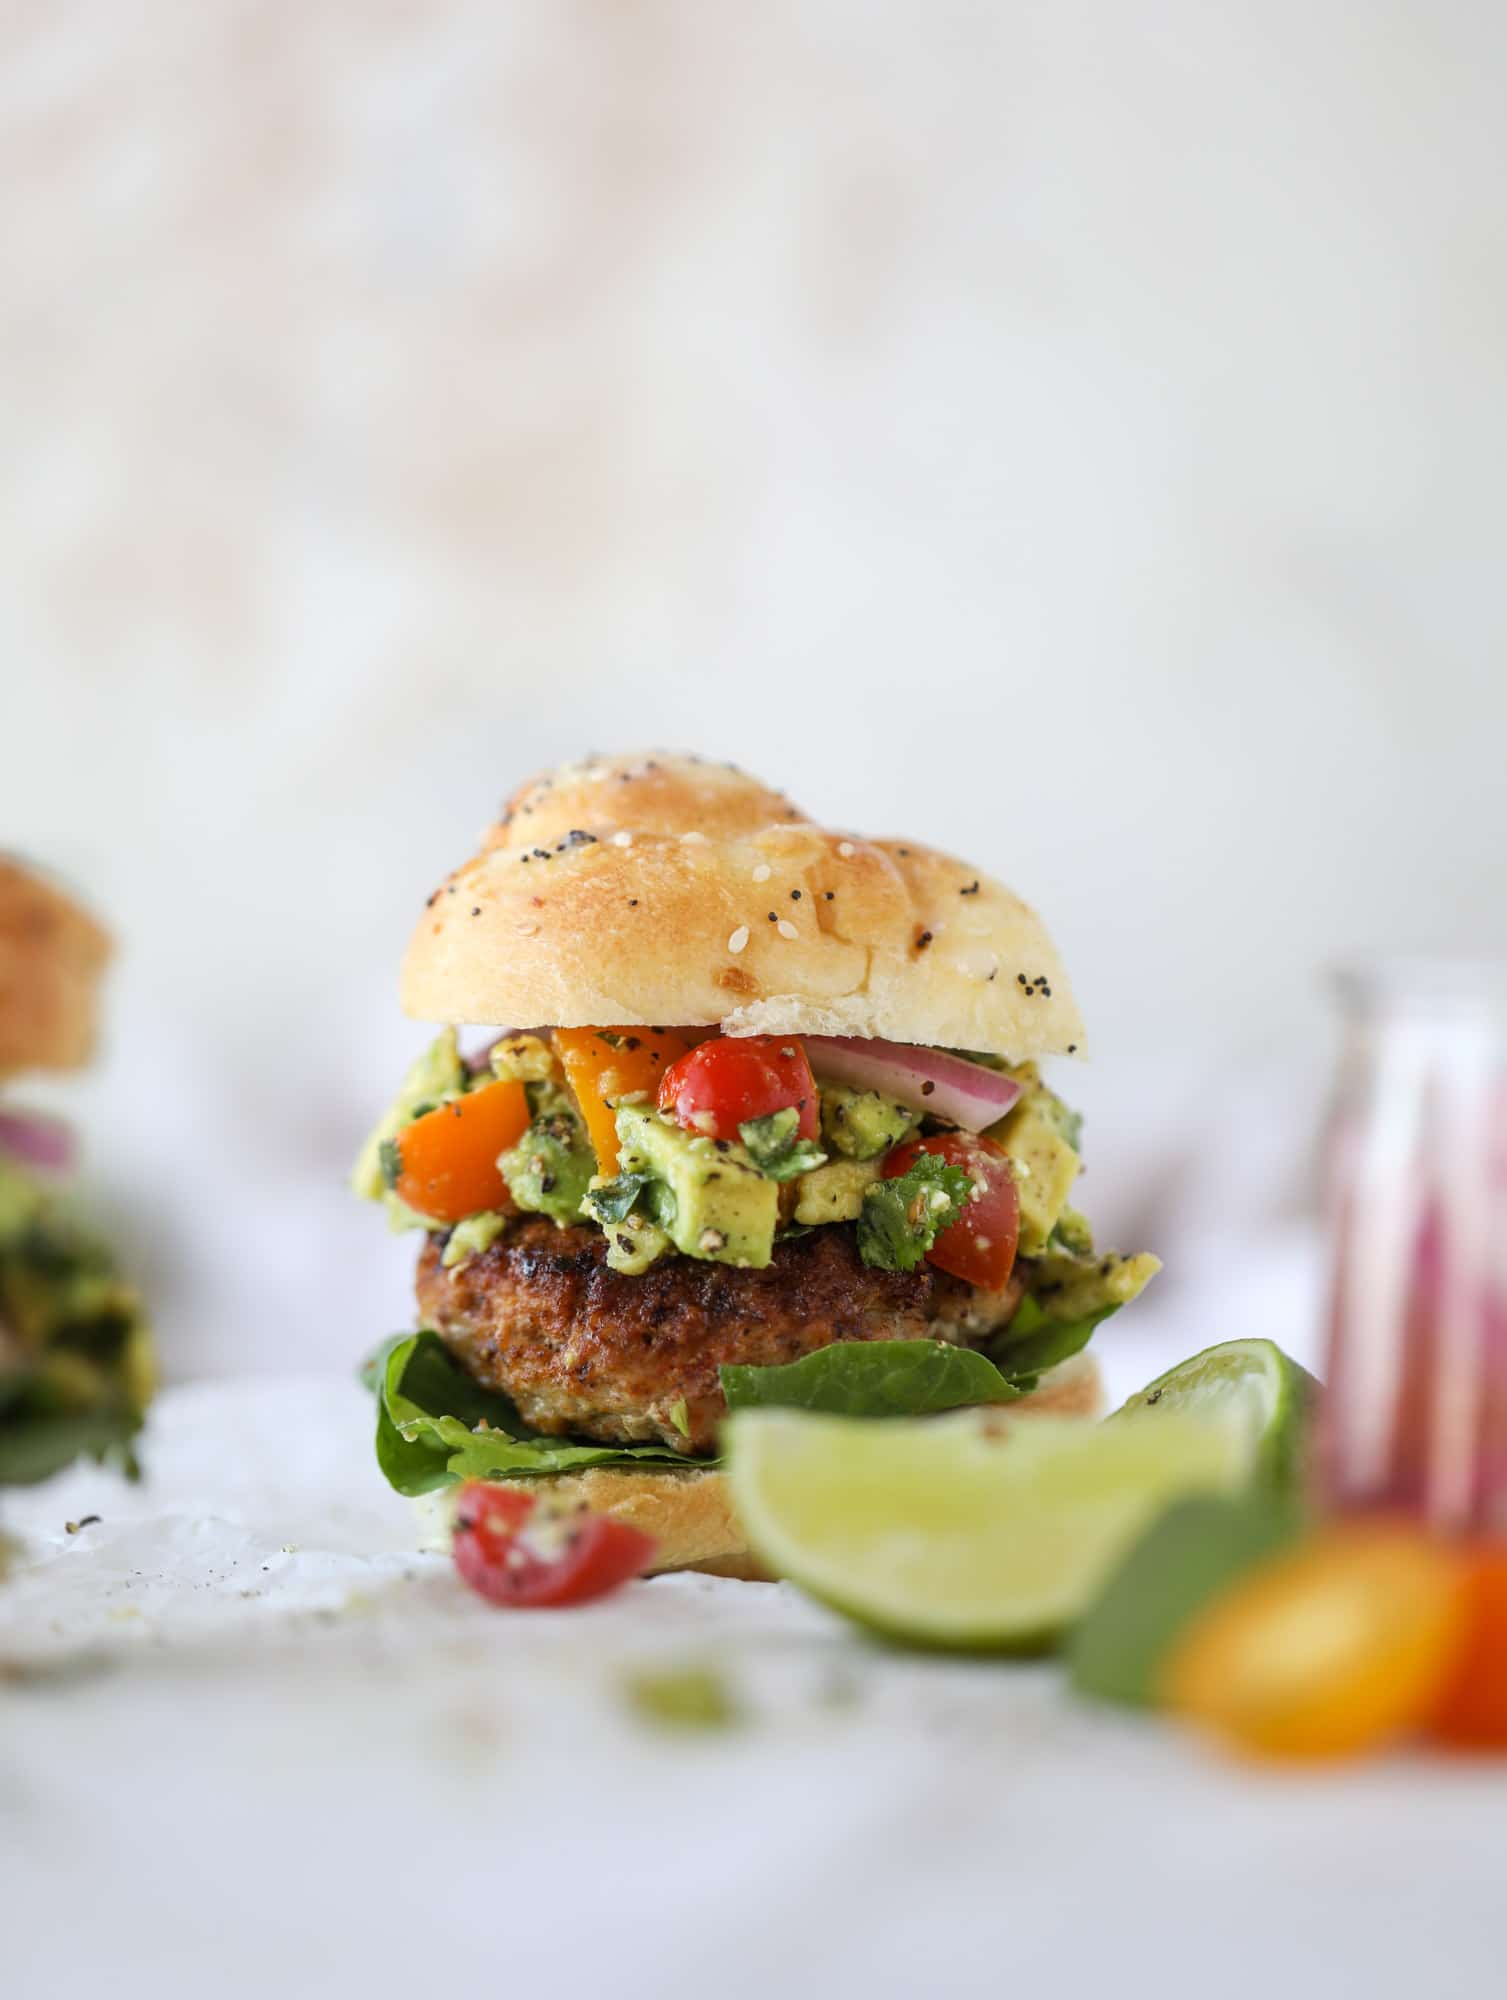 These turkey burgers are full of flavor and topped with a delicious chunky guacamole to take the flavor over the top. The perfect easy dinner! I howsweeteats.com #turkey #burgers